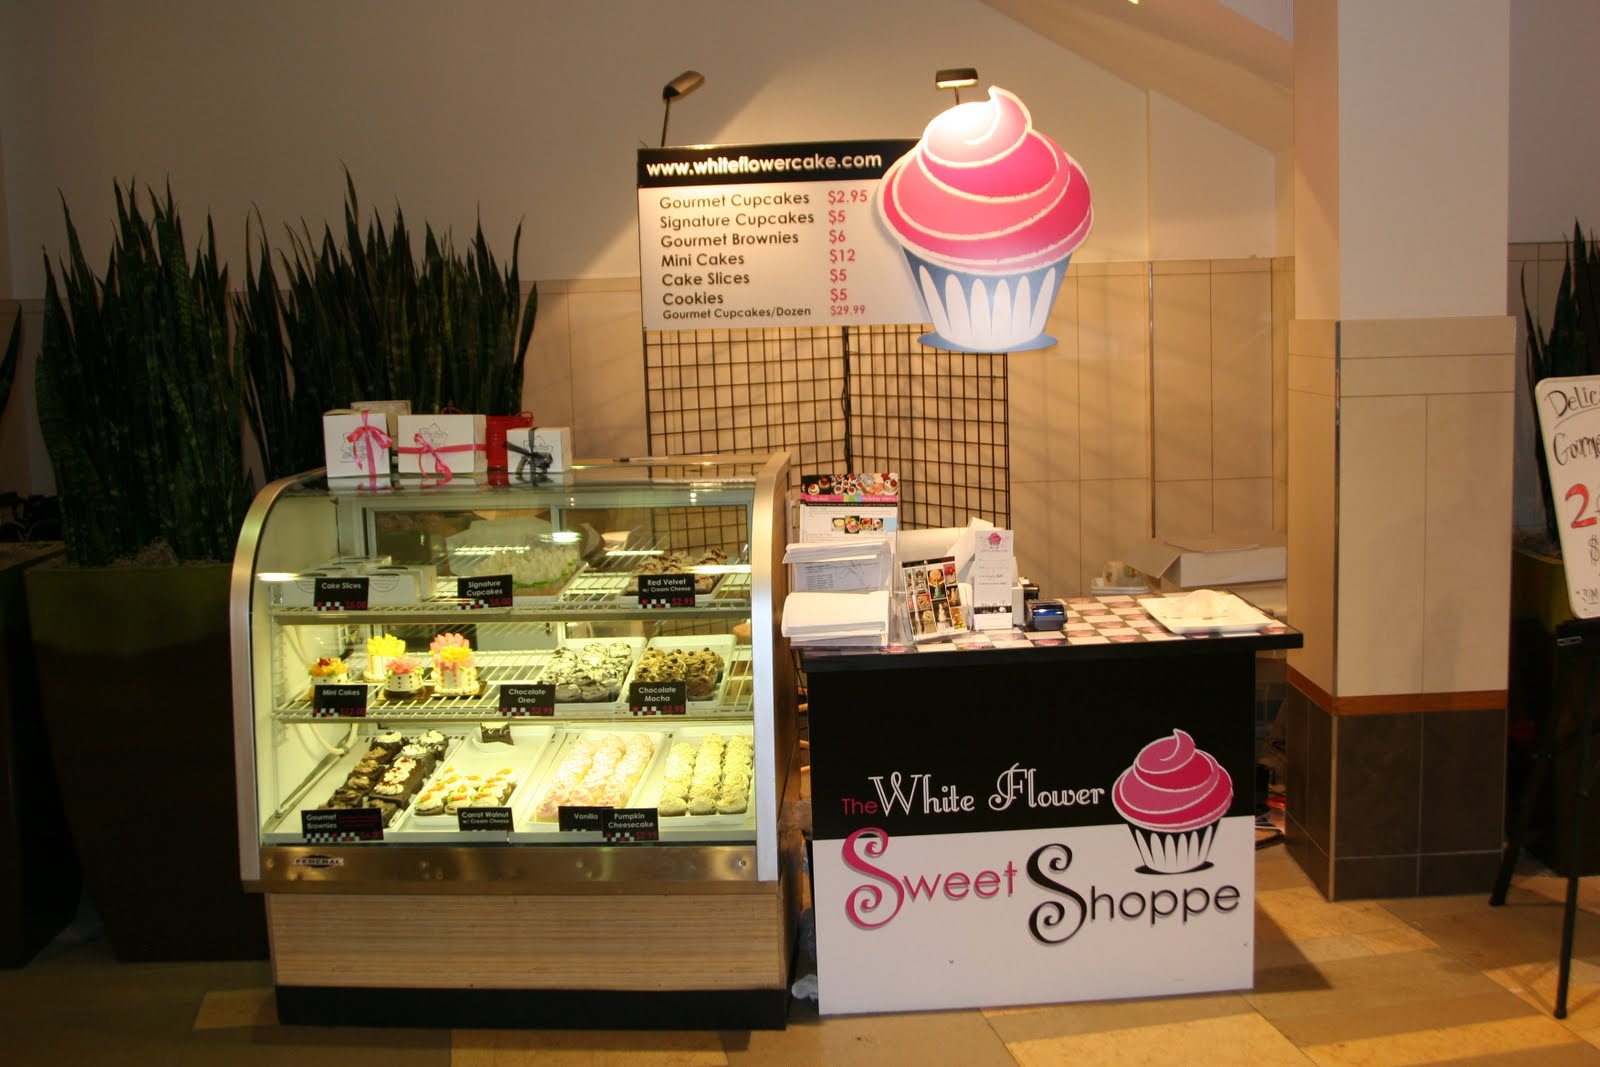 The white flower cake shoppe november 2009 we opened our second location the white flower sweet shoppe at beachwood mall where we sell all of our yummy retail items cupcakes brownies mightylinksfo